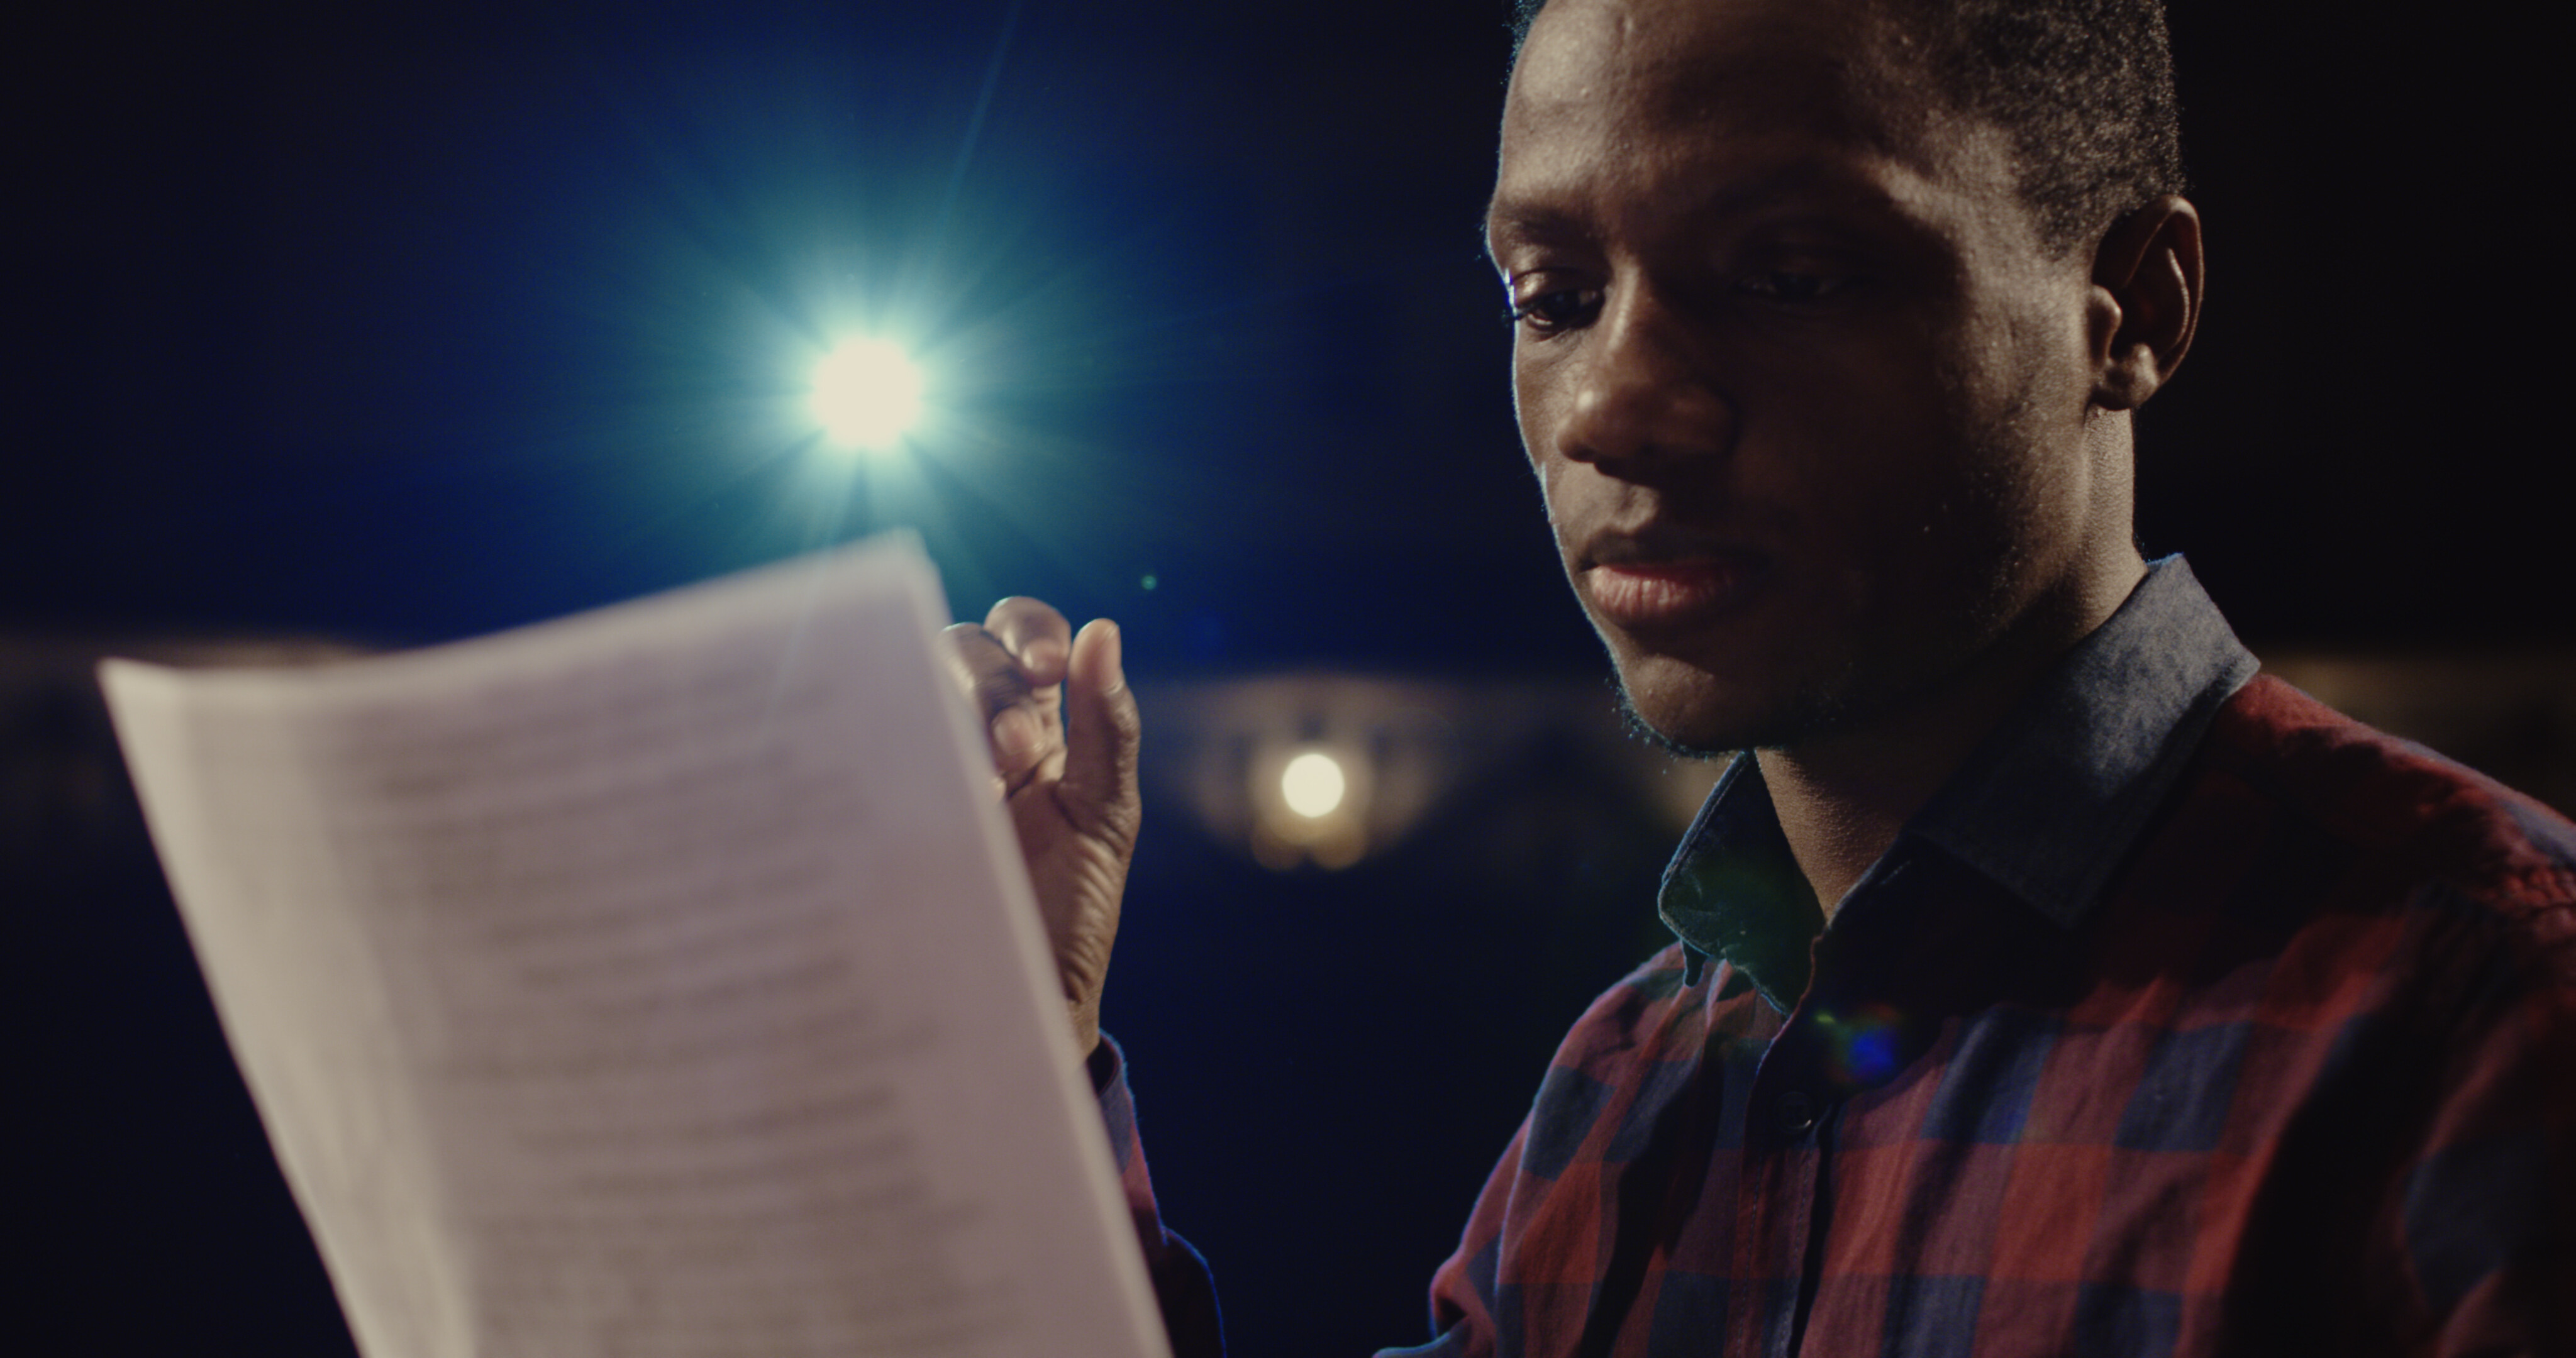 A man reading a script on a stage. A spotlight is shining on him.